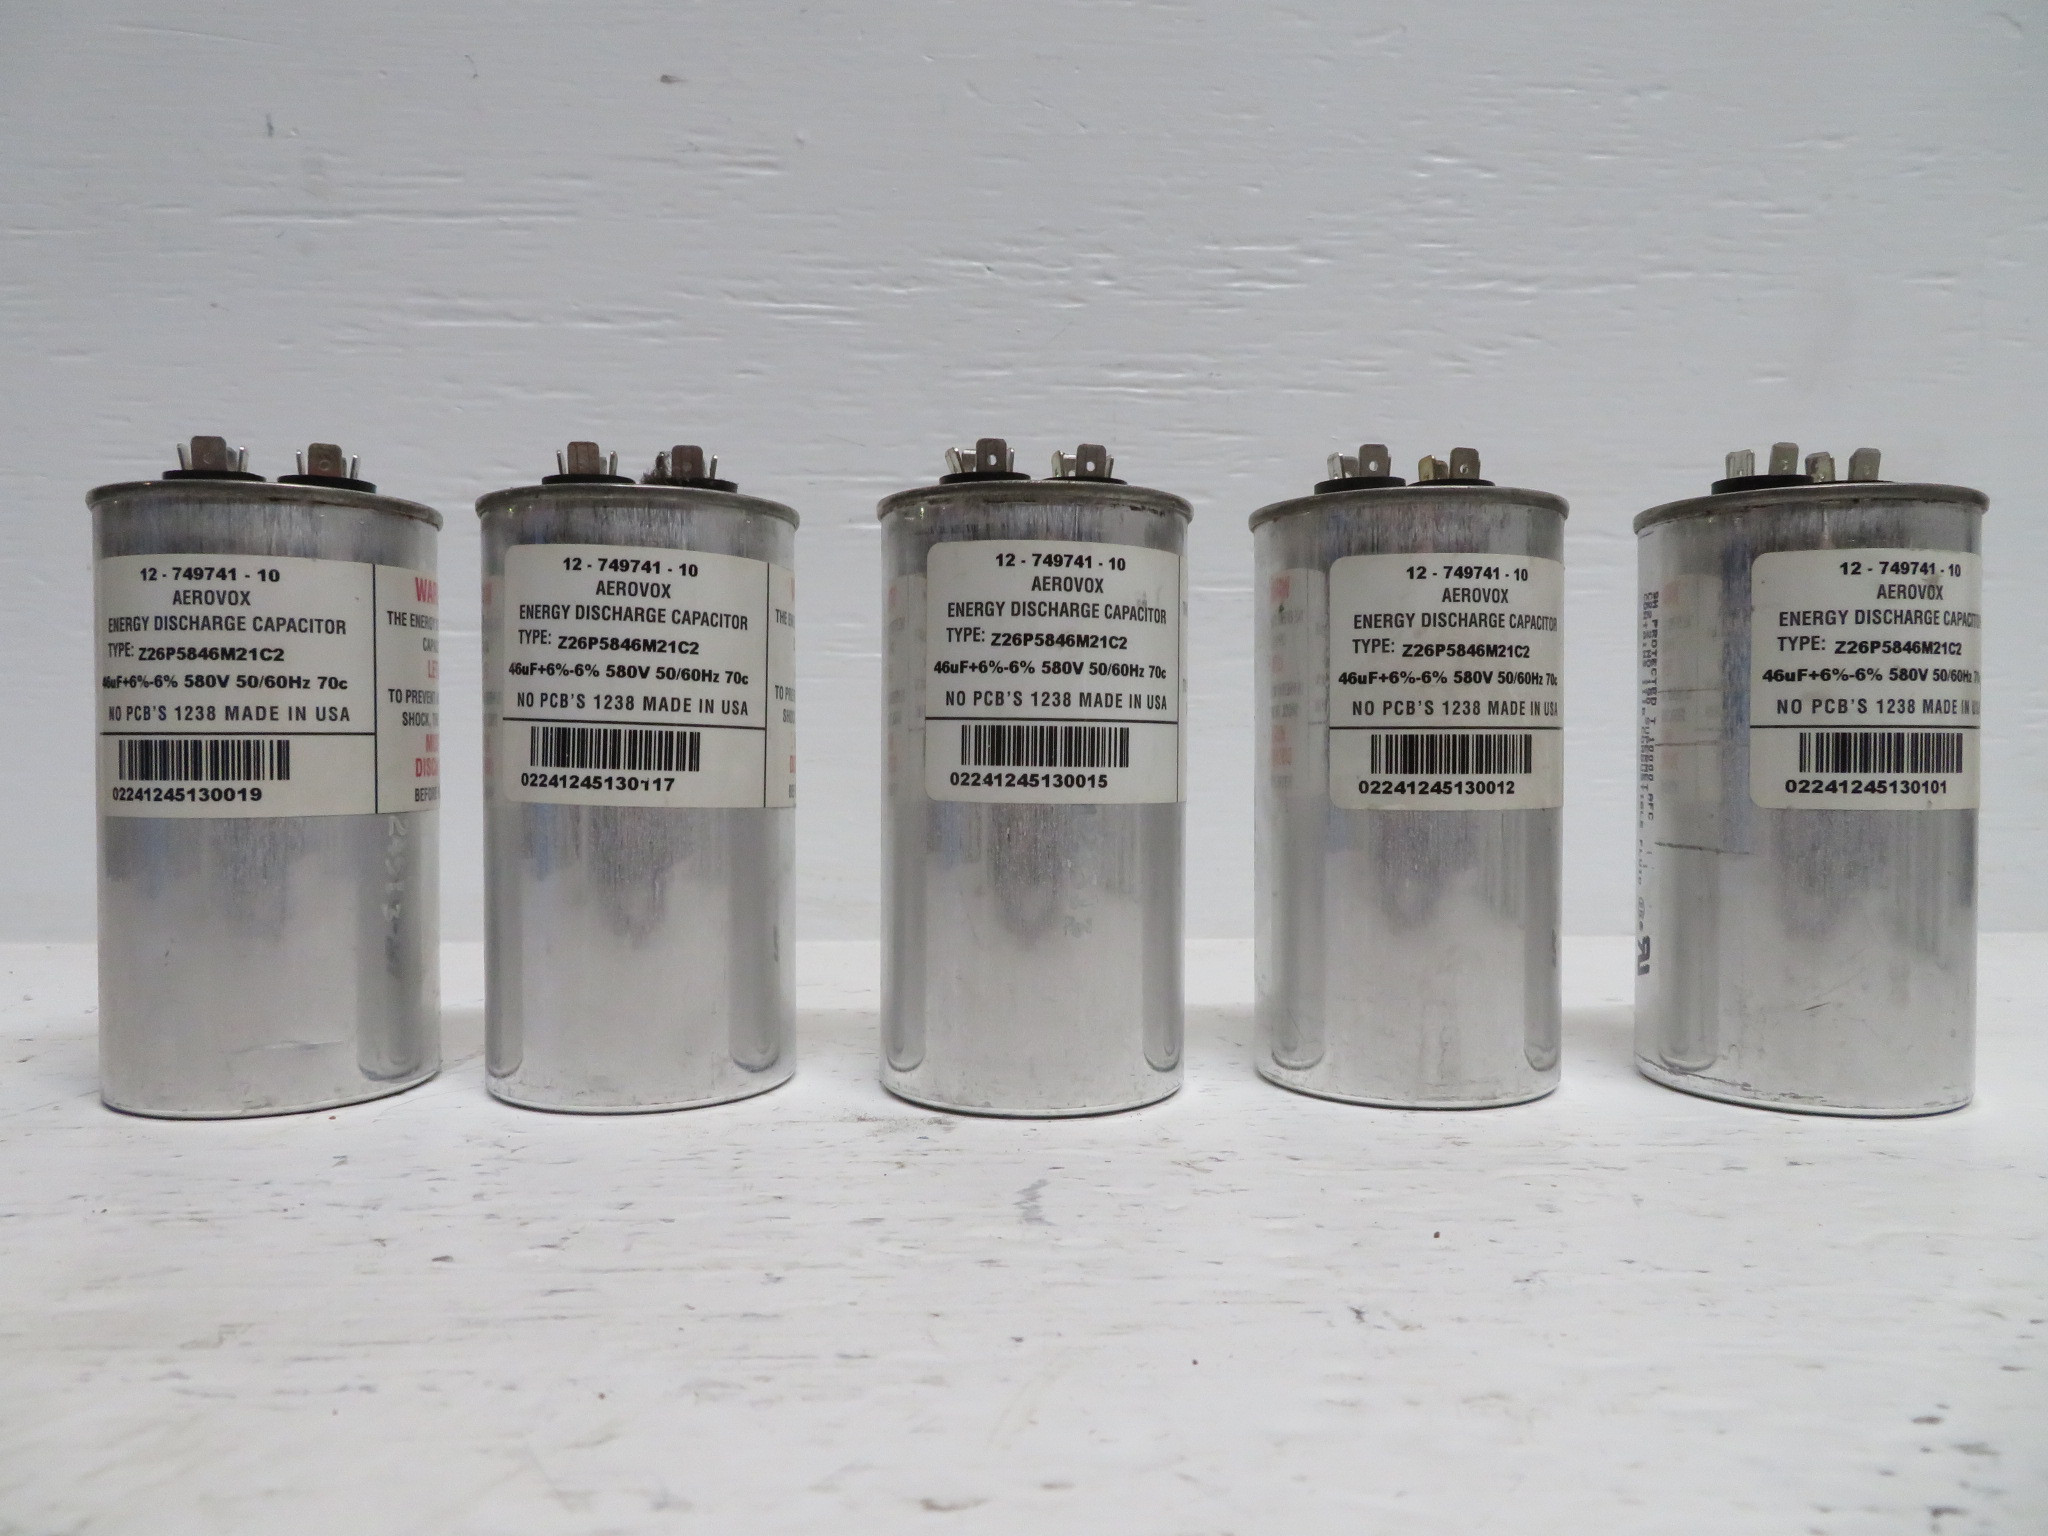 medium resolution of lot of 5 aerovox 12 749741 10 capacitor z26p5846m21c2 46 uf 6 580 vac np2295 3 river city industrial